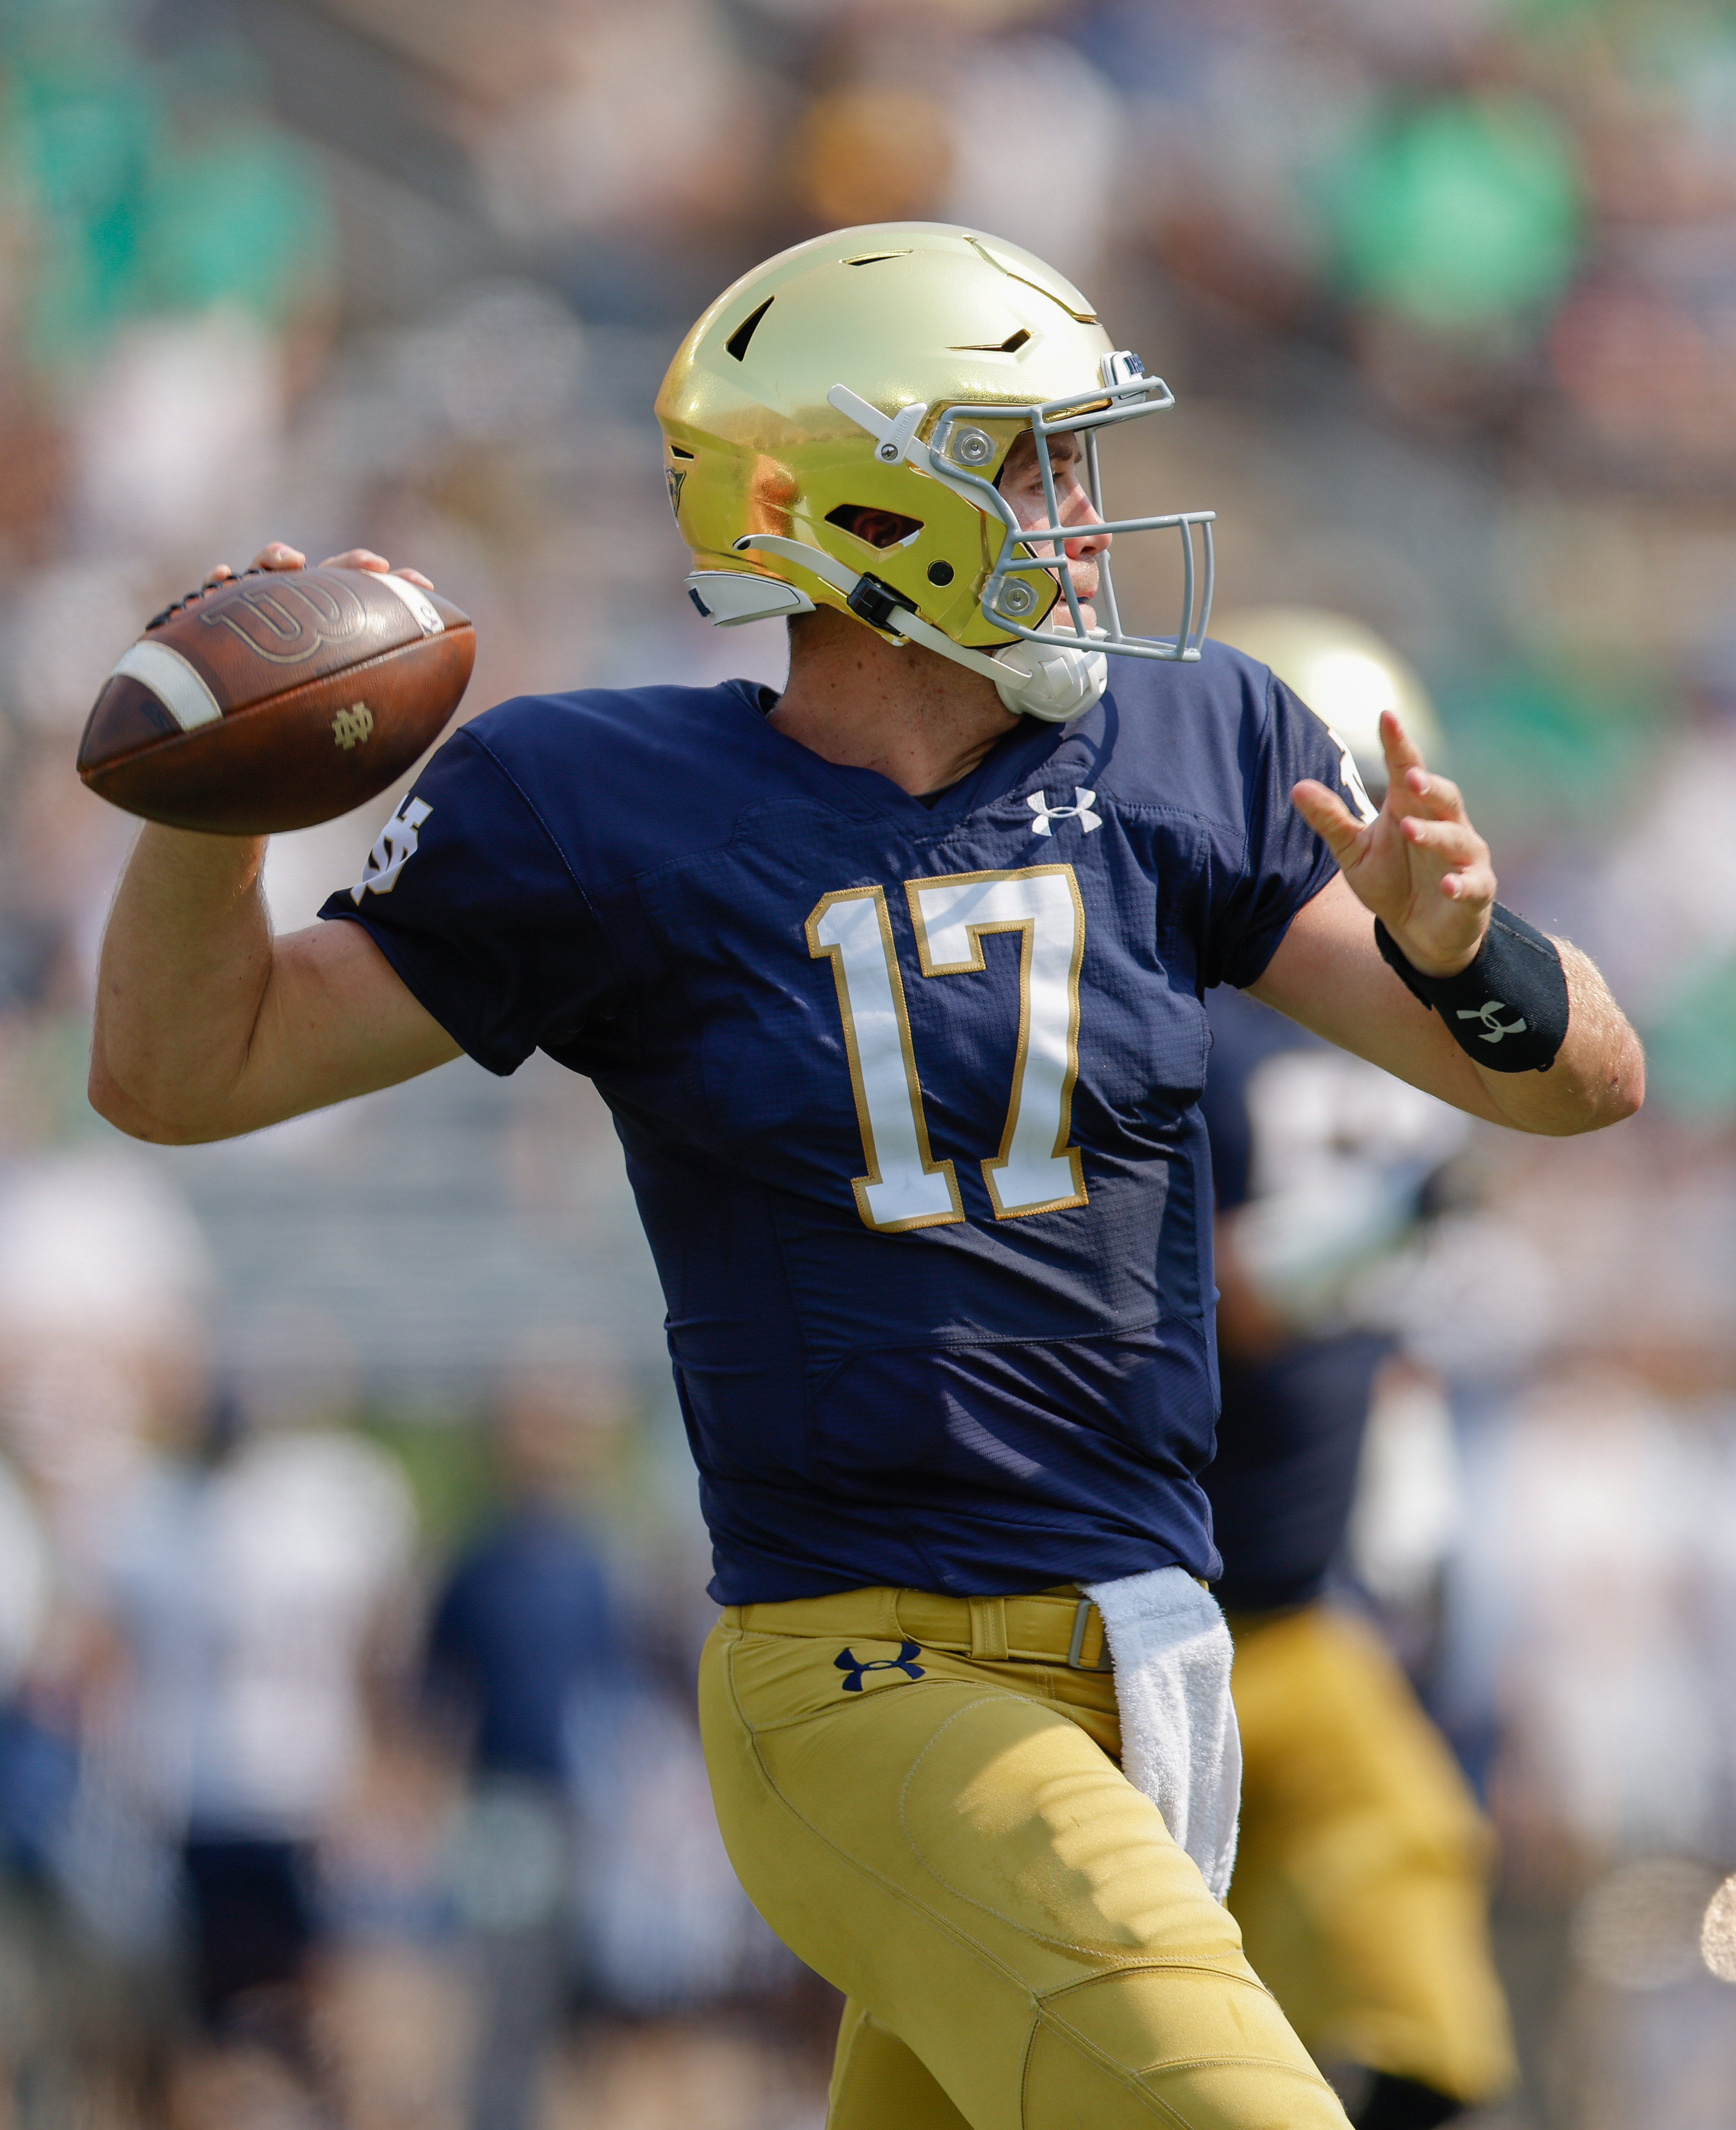 Jack Coan of the Notre Dame Fighting Irish is seen during the game against the Toledo Rockets at Notre Dame Stadium on September 11, 2021 in South Bend, Indiana.